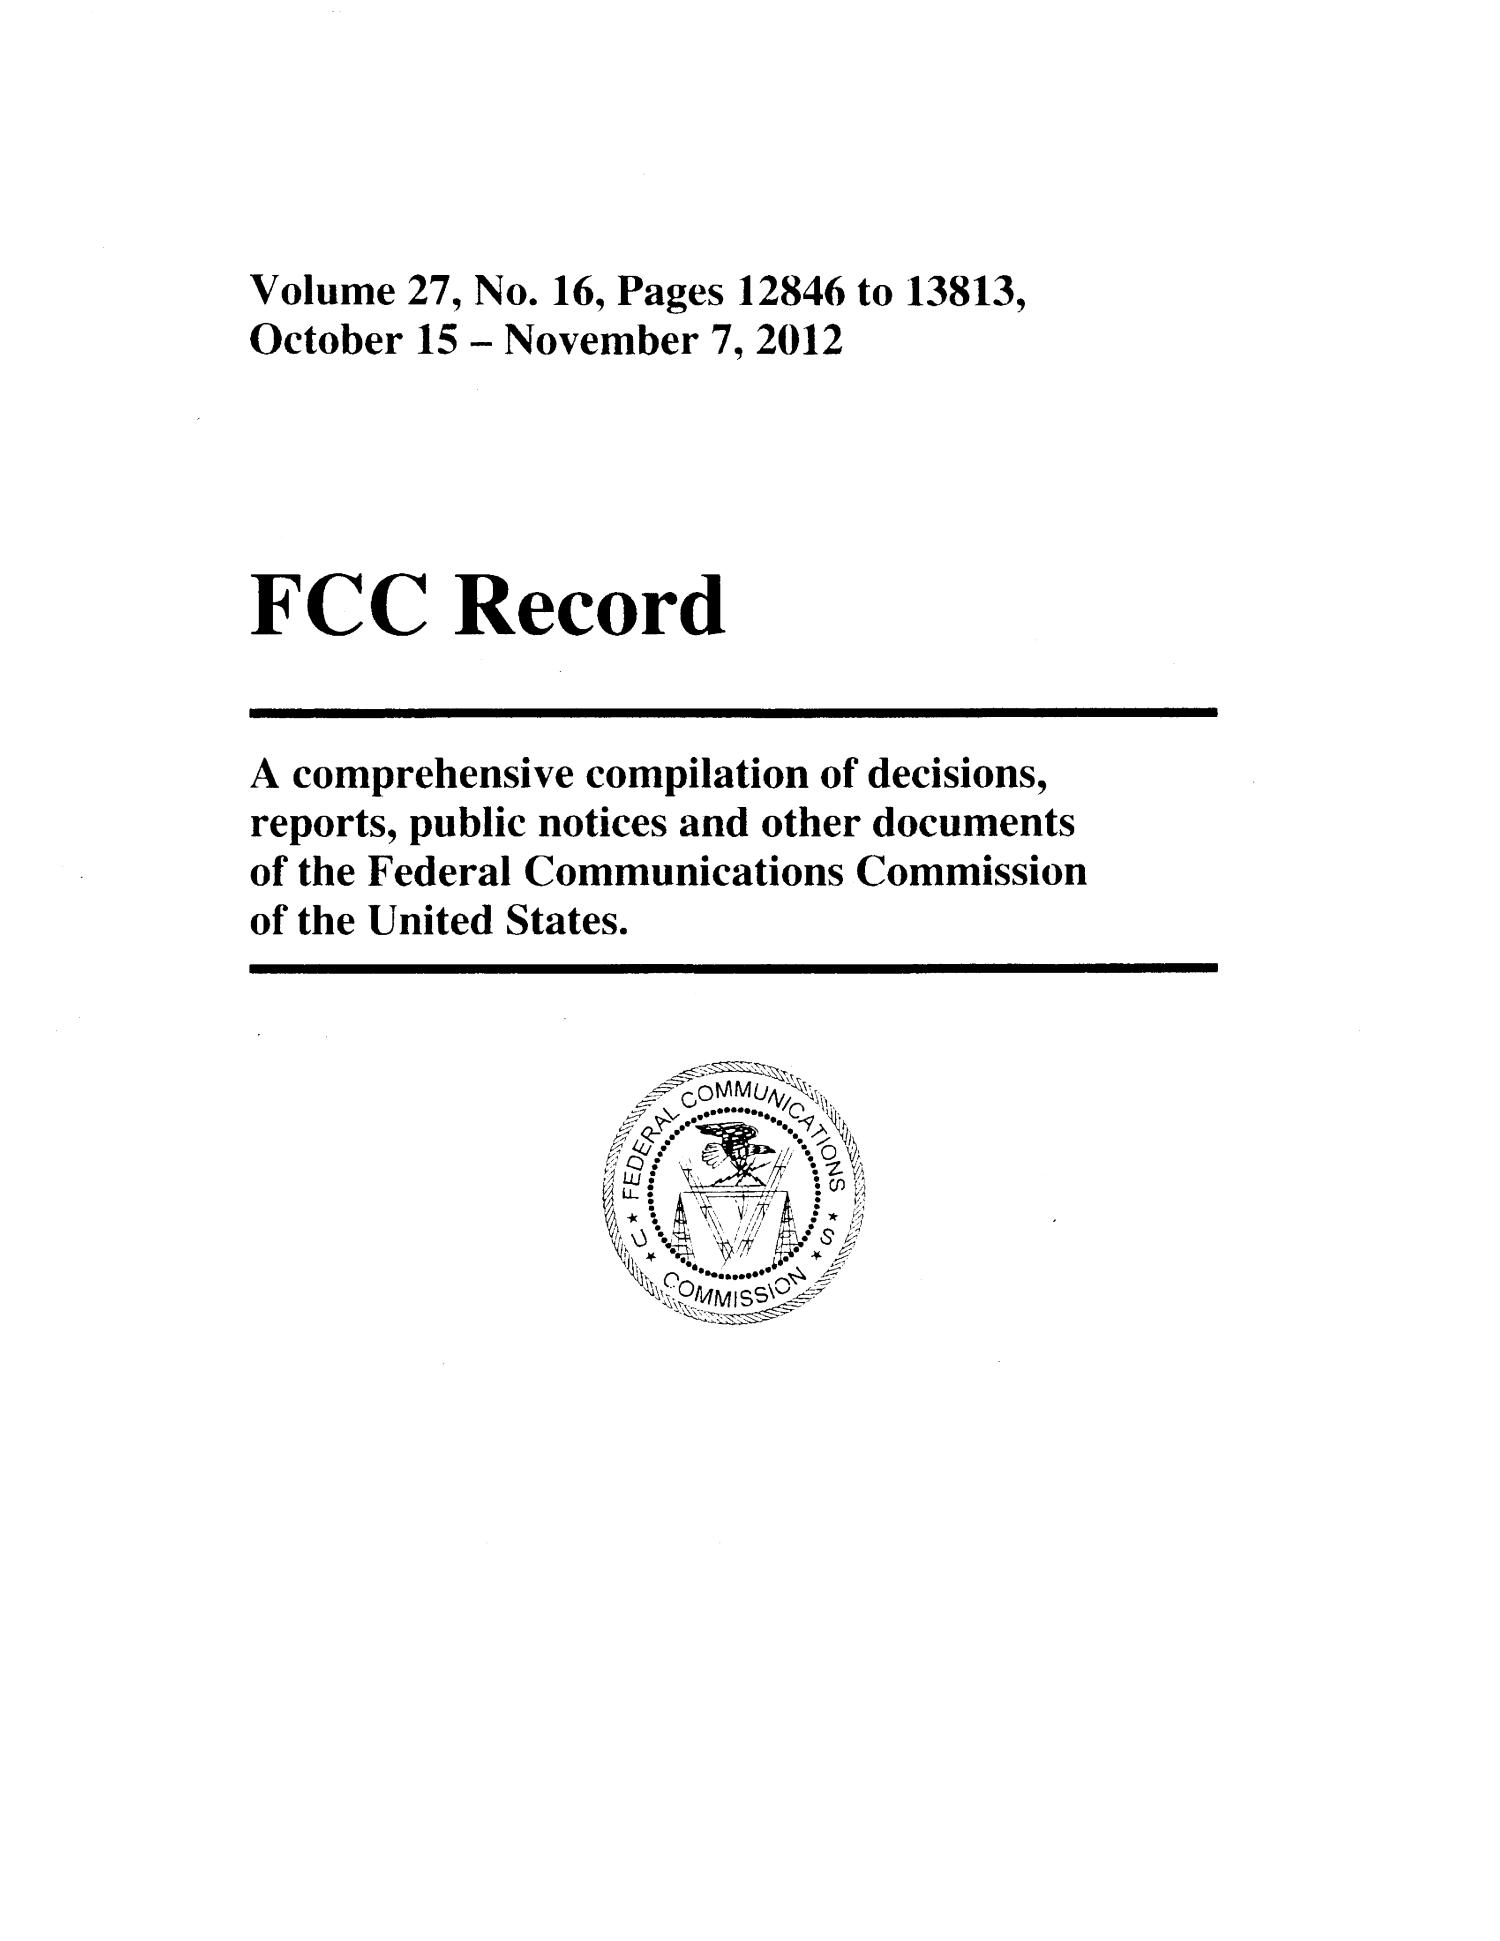 FCC Record, Volume 27, No. 16, Pages 12846 to 13813, October 15 - November 7, 2012                                                                                                      Title Page